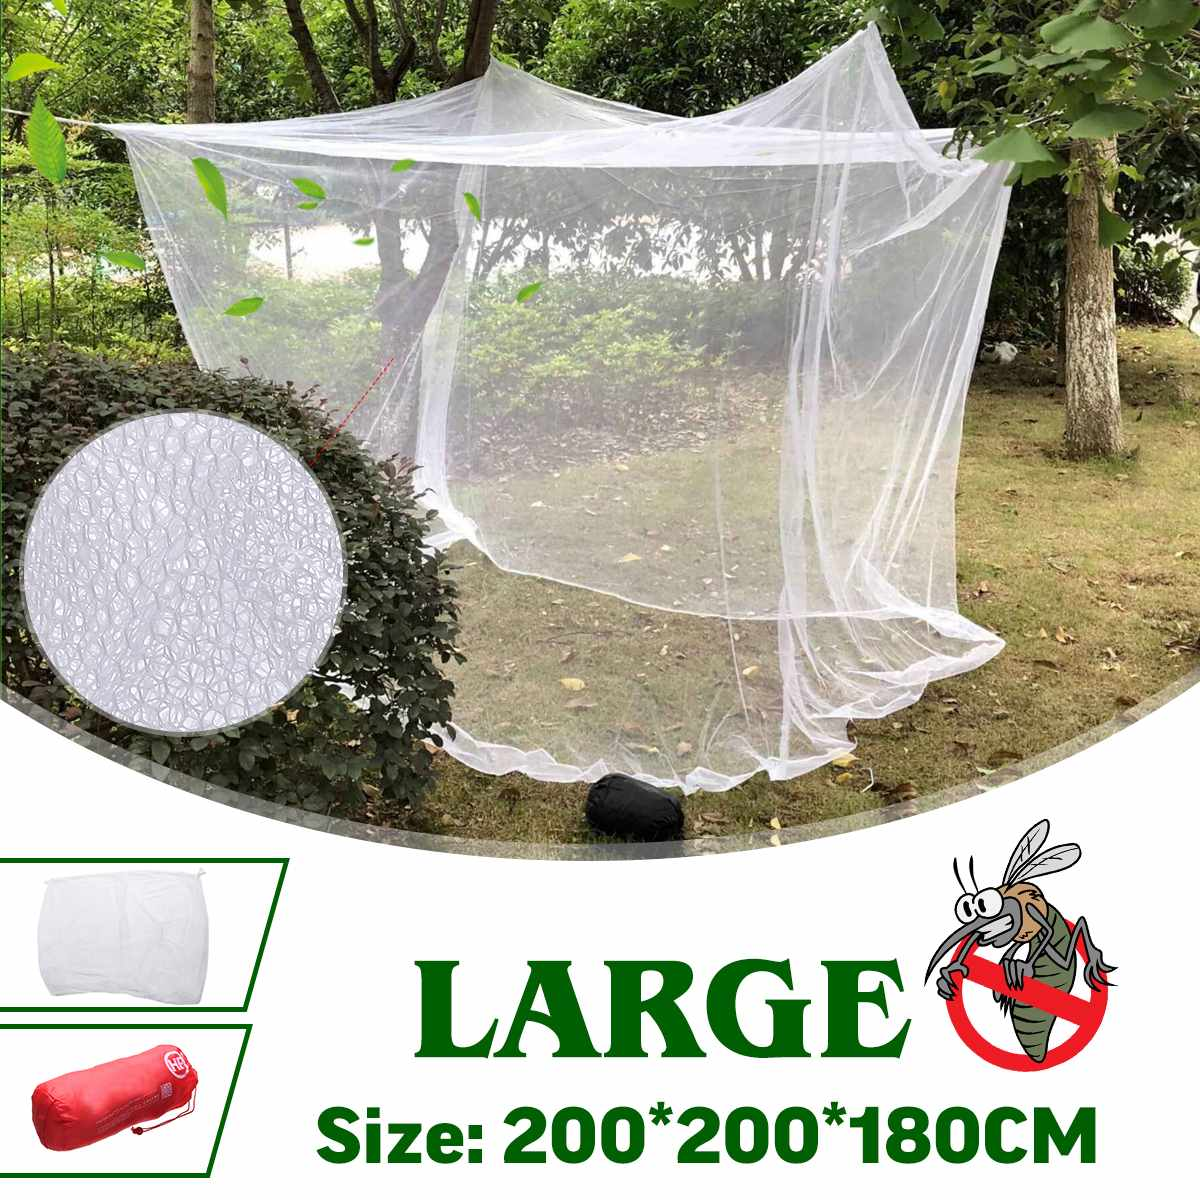 200x200x180cm Travel Camping Mosquito Net Repellent Tent Insect Reject 4 Corner Post Canopy Bed Curtain Bed Tent Hanging Bed 1